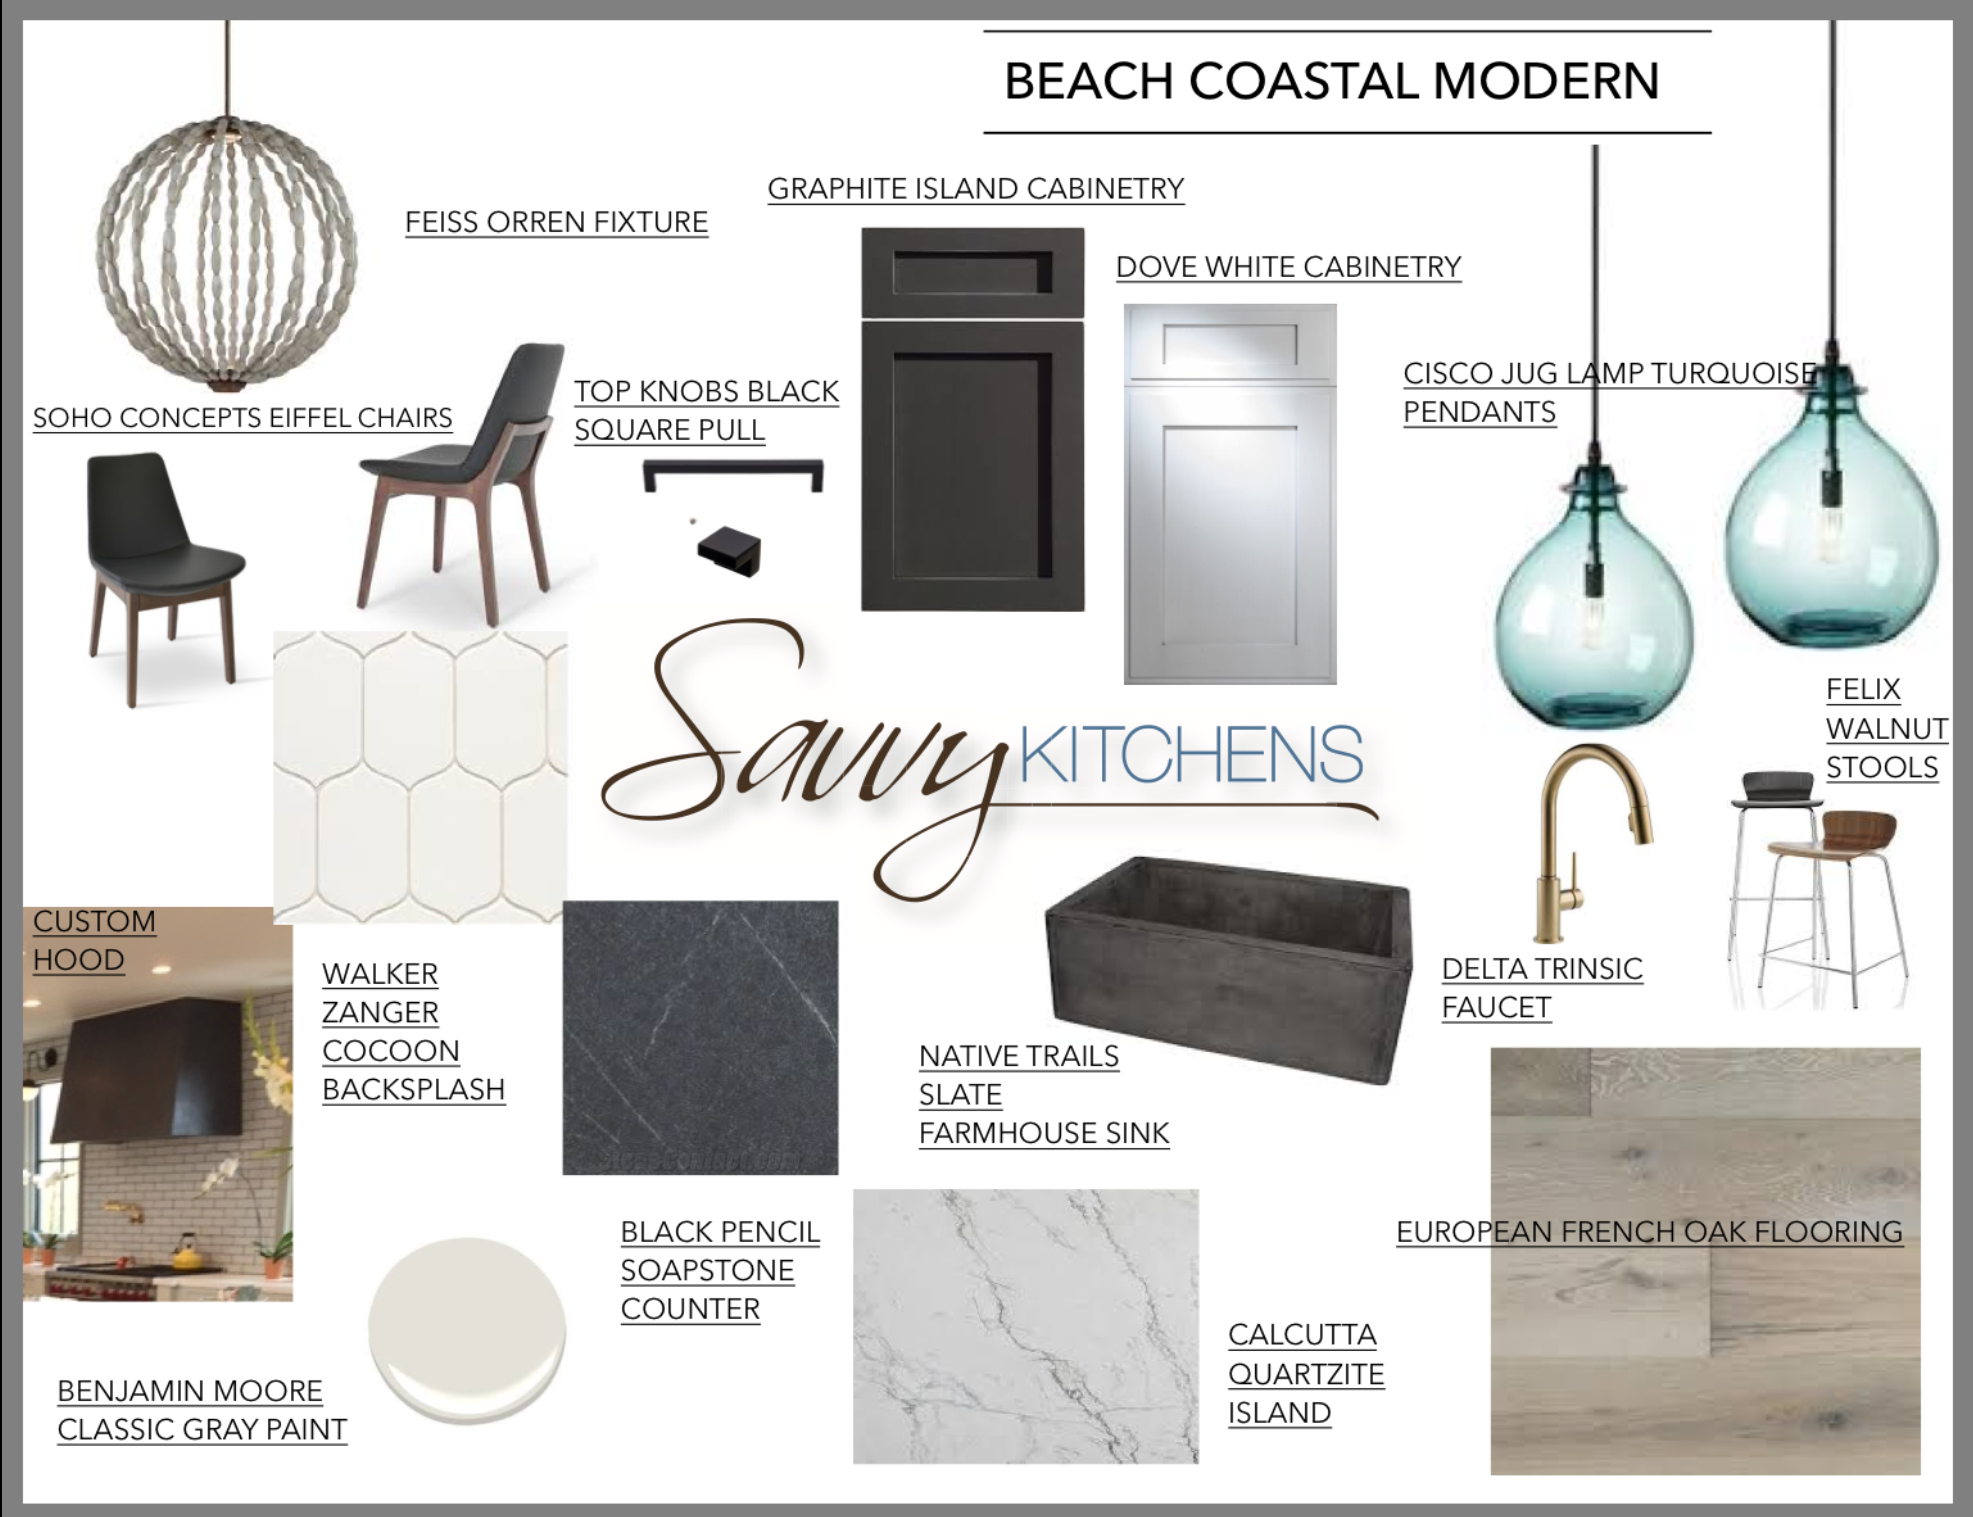 SERVICES — SAVVY KITCHENS